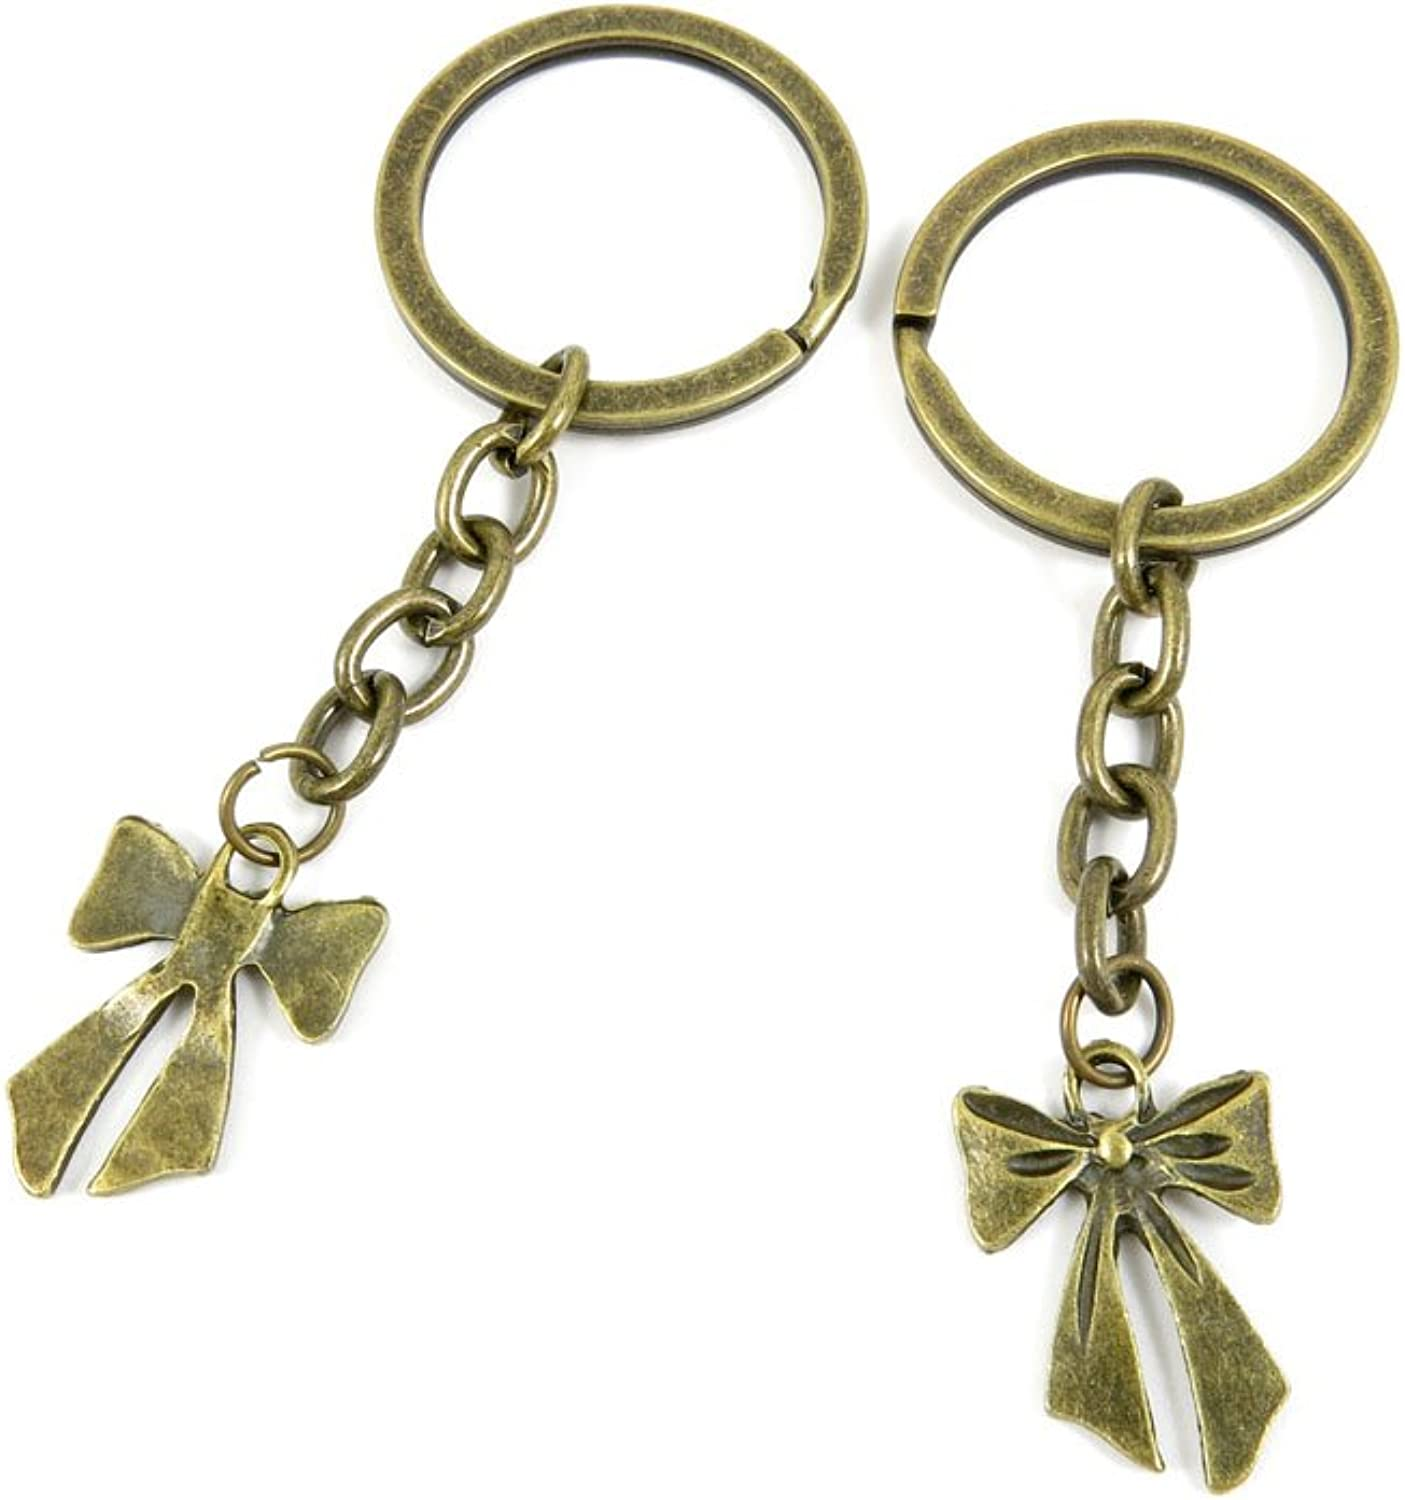 100 PCS Keyrings Keychains Key Ring Chains Tags Jewelry Findings Clasps Buckles Supplies E9KU0 Bowknot Bowtie